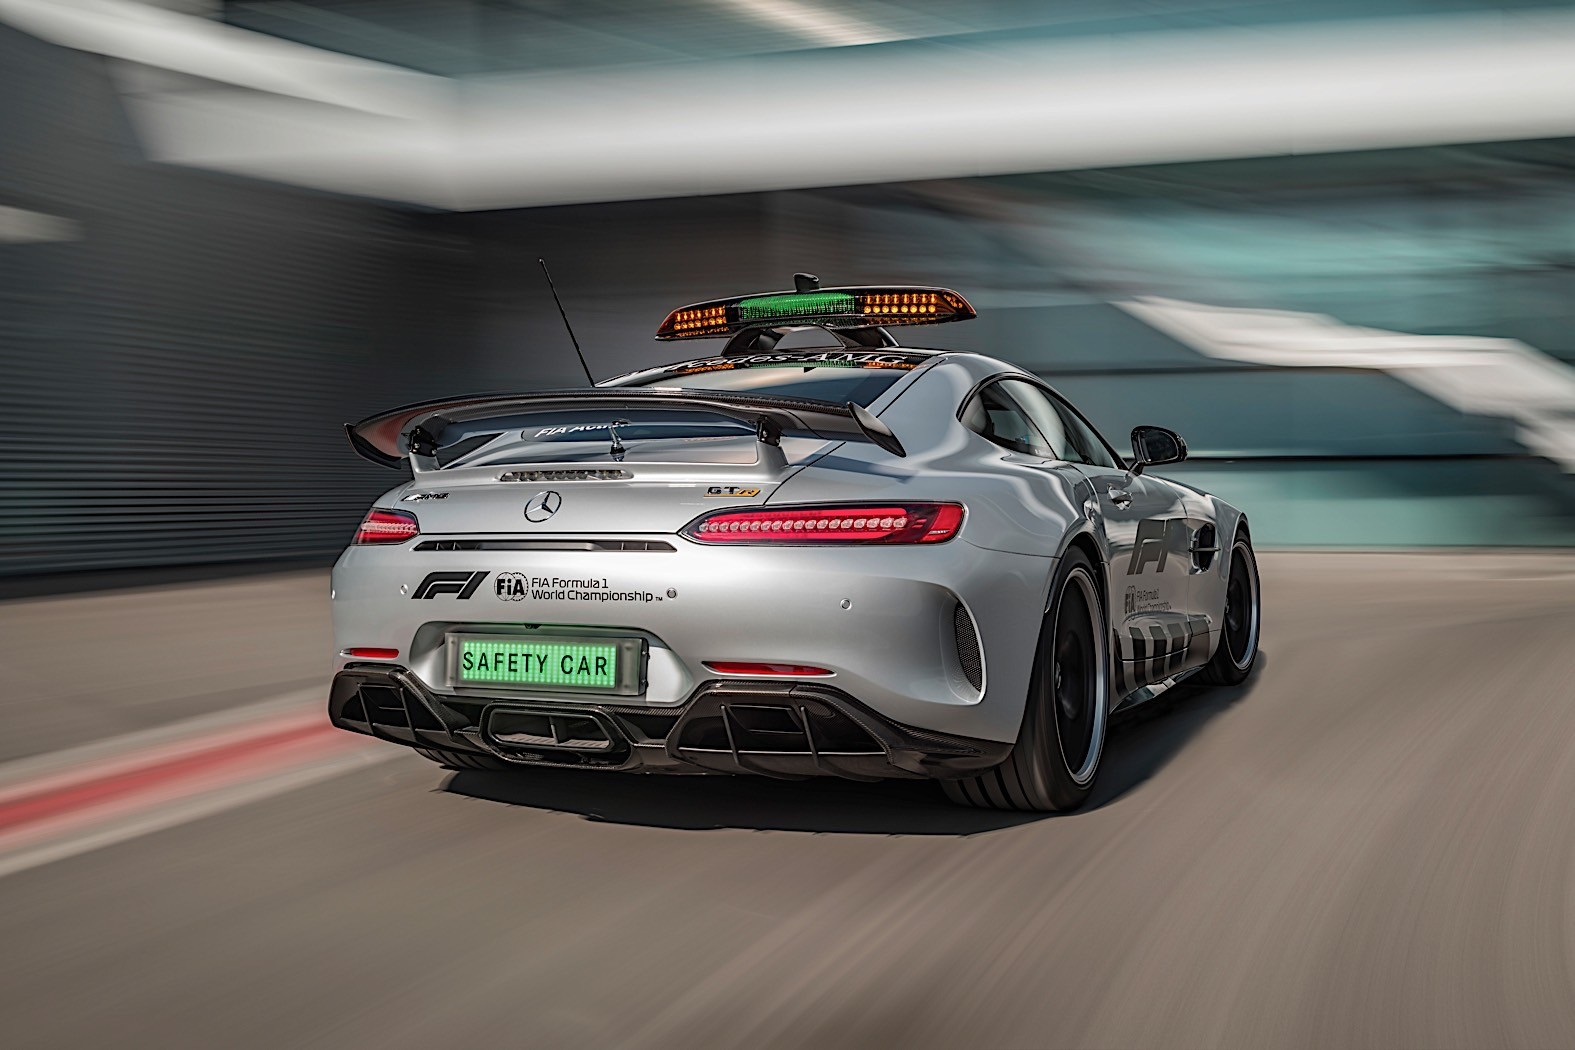 Check out the AMG GT R Formula 1 Pace Car